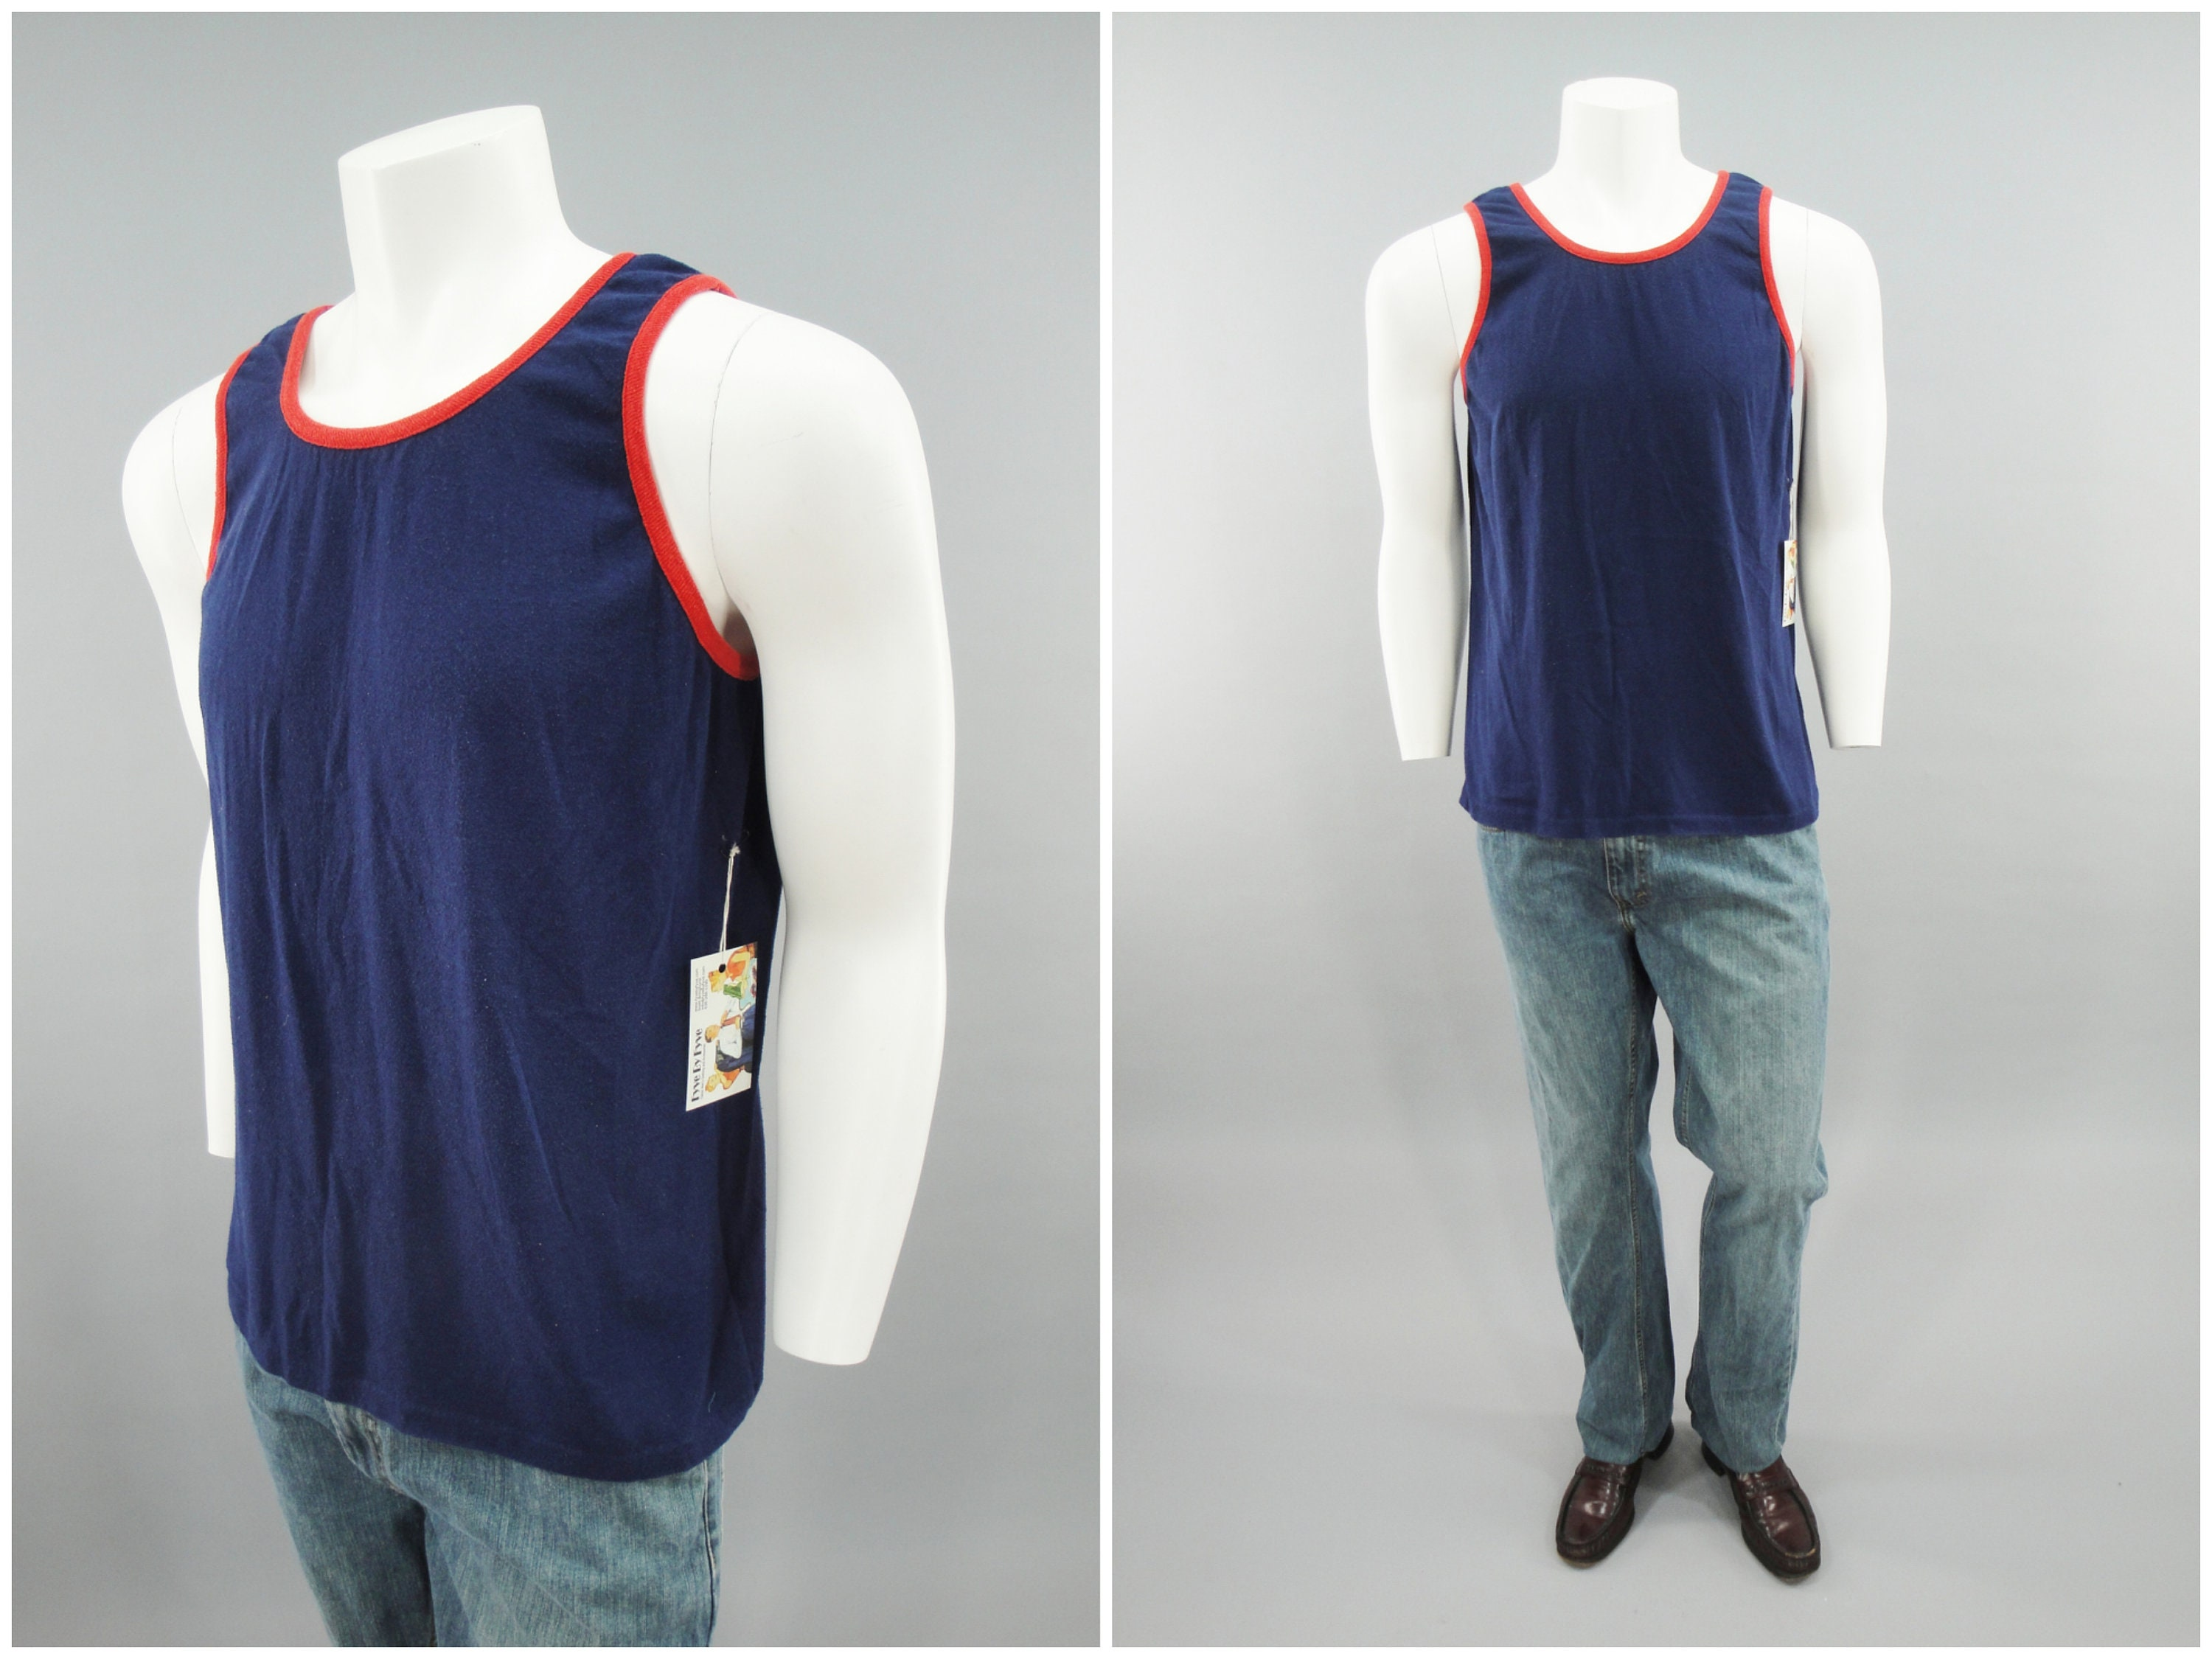 1970s Mens Shirt Styles – Vintage 70s Shirts for Guys 1970S 1980S Vintage Blue Tank Top With Red Piping, Sleeveless Muscle Beach Shirt, True Original 70s Macho Man, Mens Size Small - Medium $0.00 AT vintagedancer.com